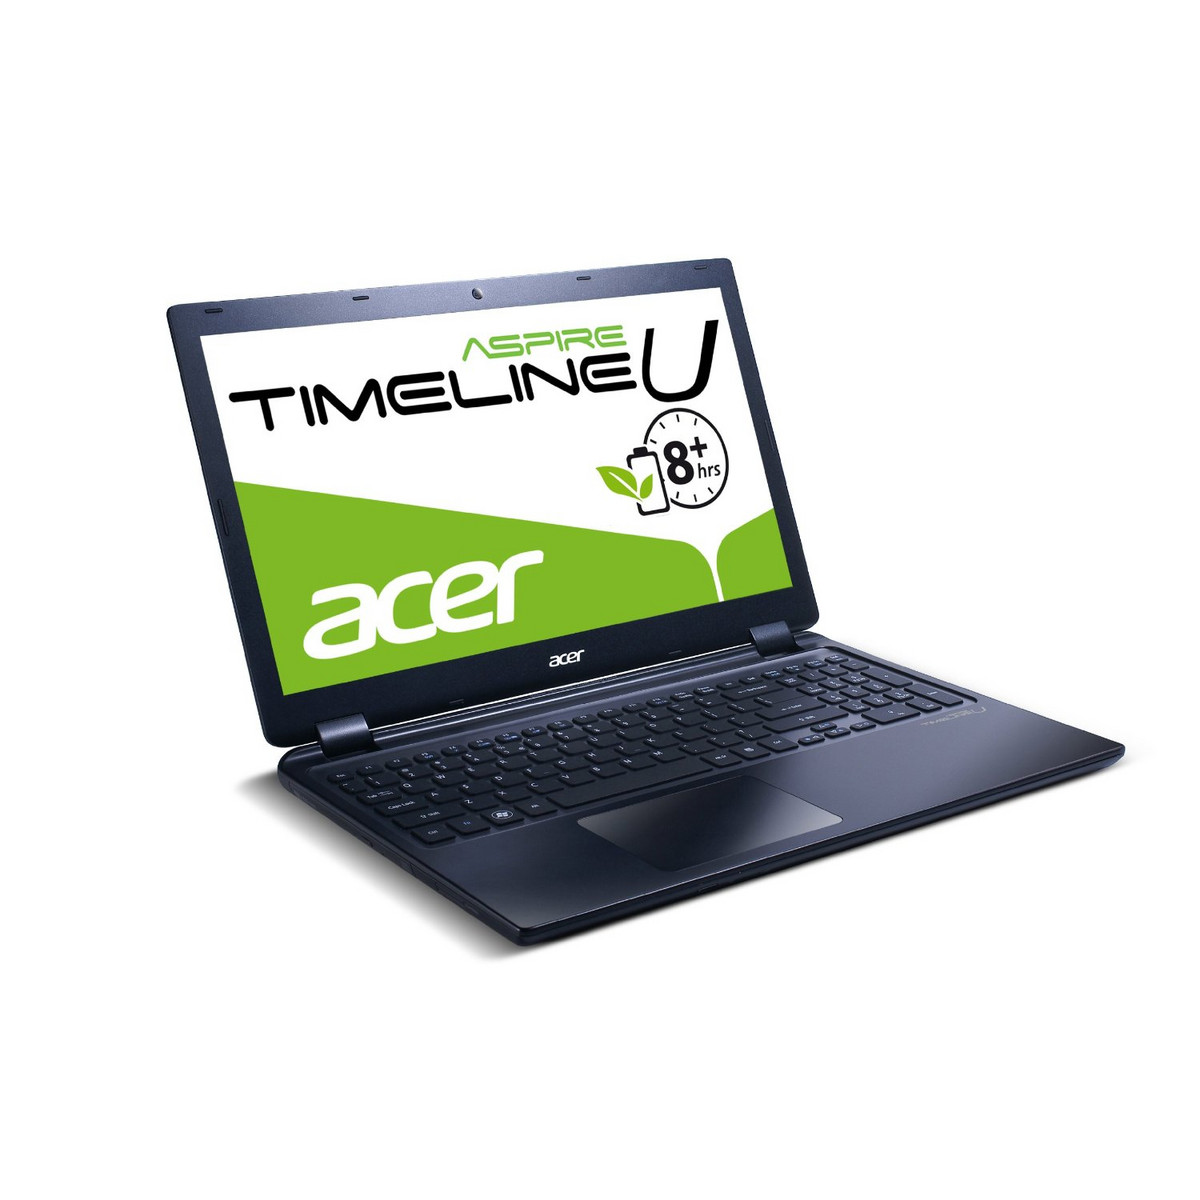 Acer Aspire M3-581PT Intel RST Vista